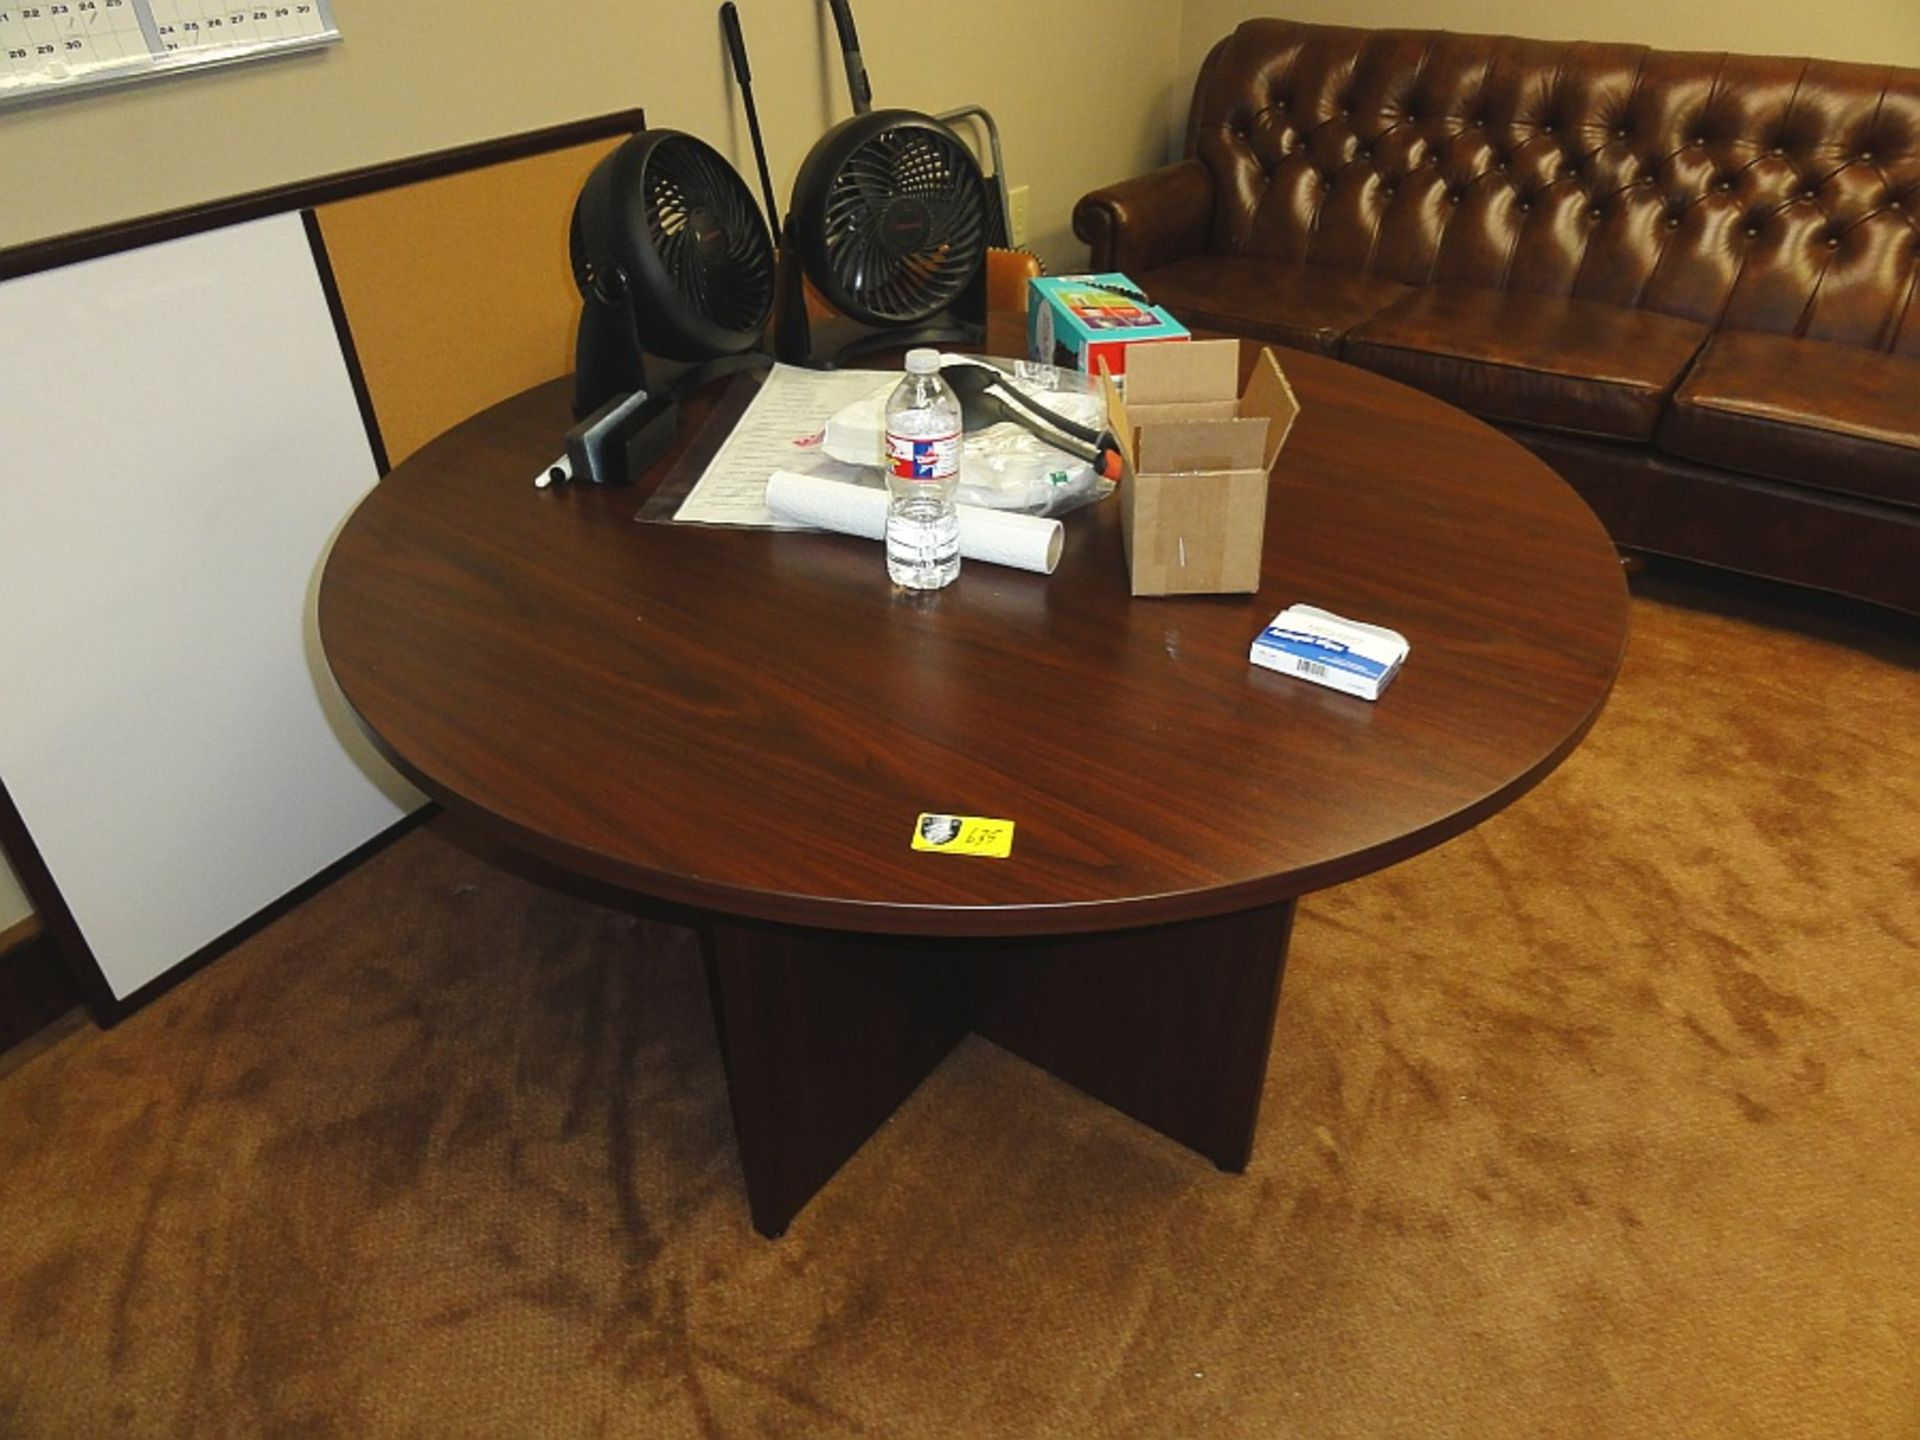 Lot 635 - Round Wooden Conference Table